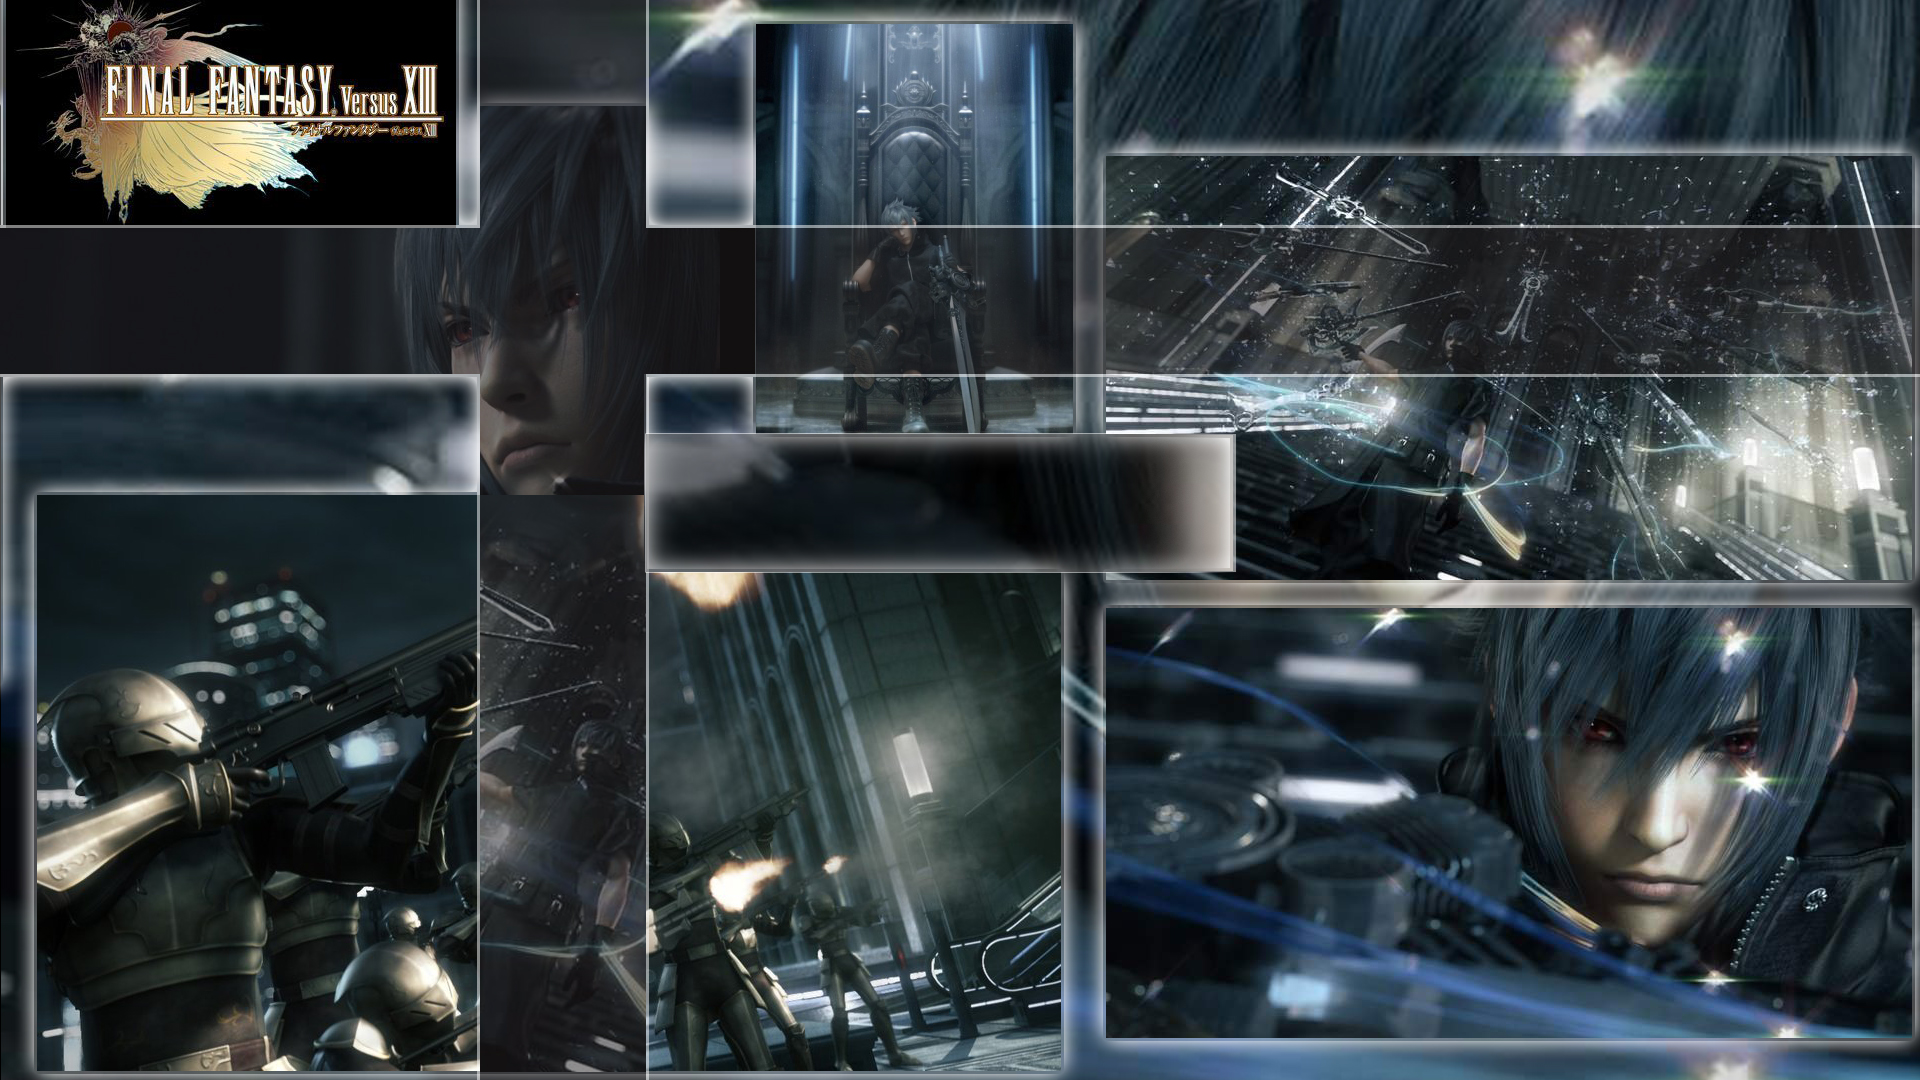 This is a Final Fantasy Versus XIII Image wallpaper.